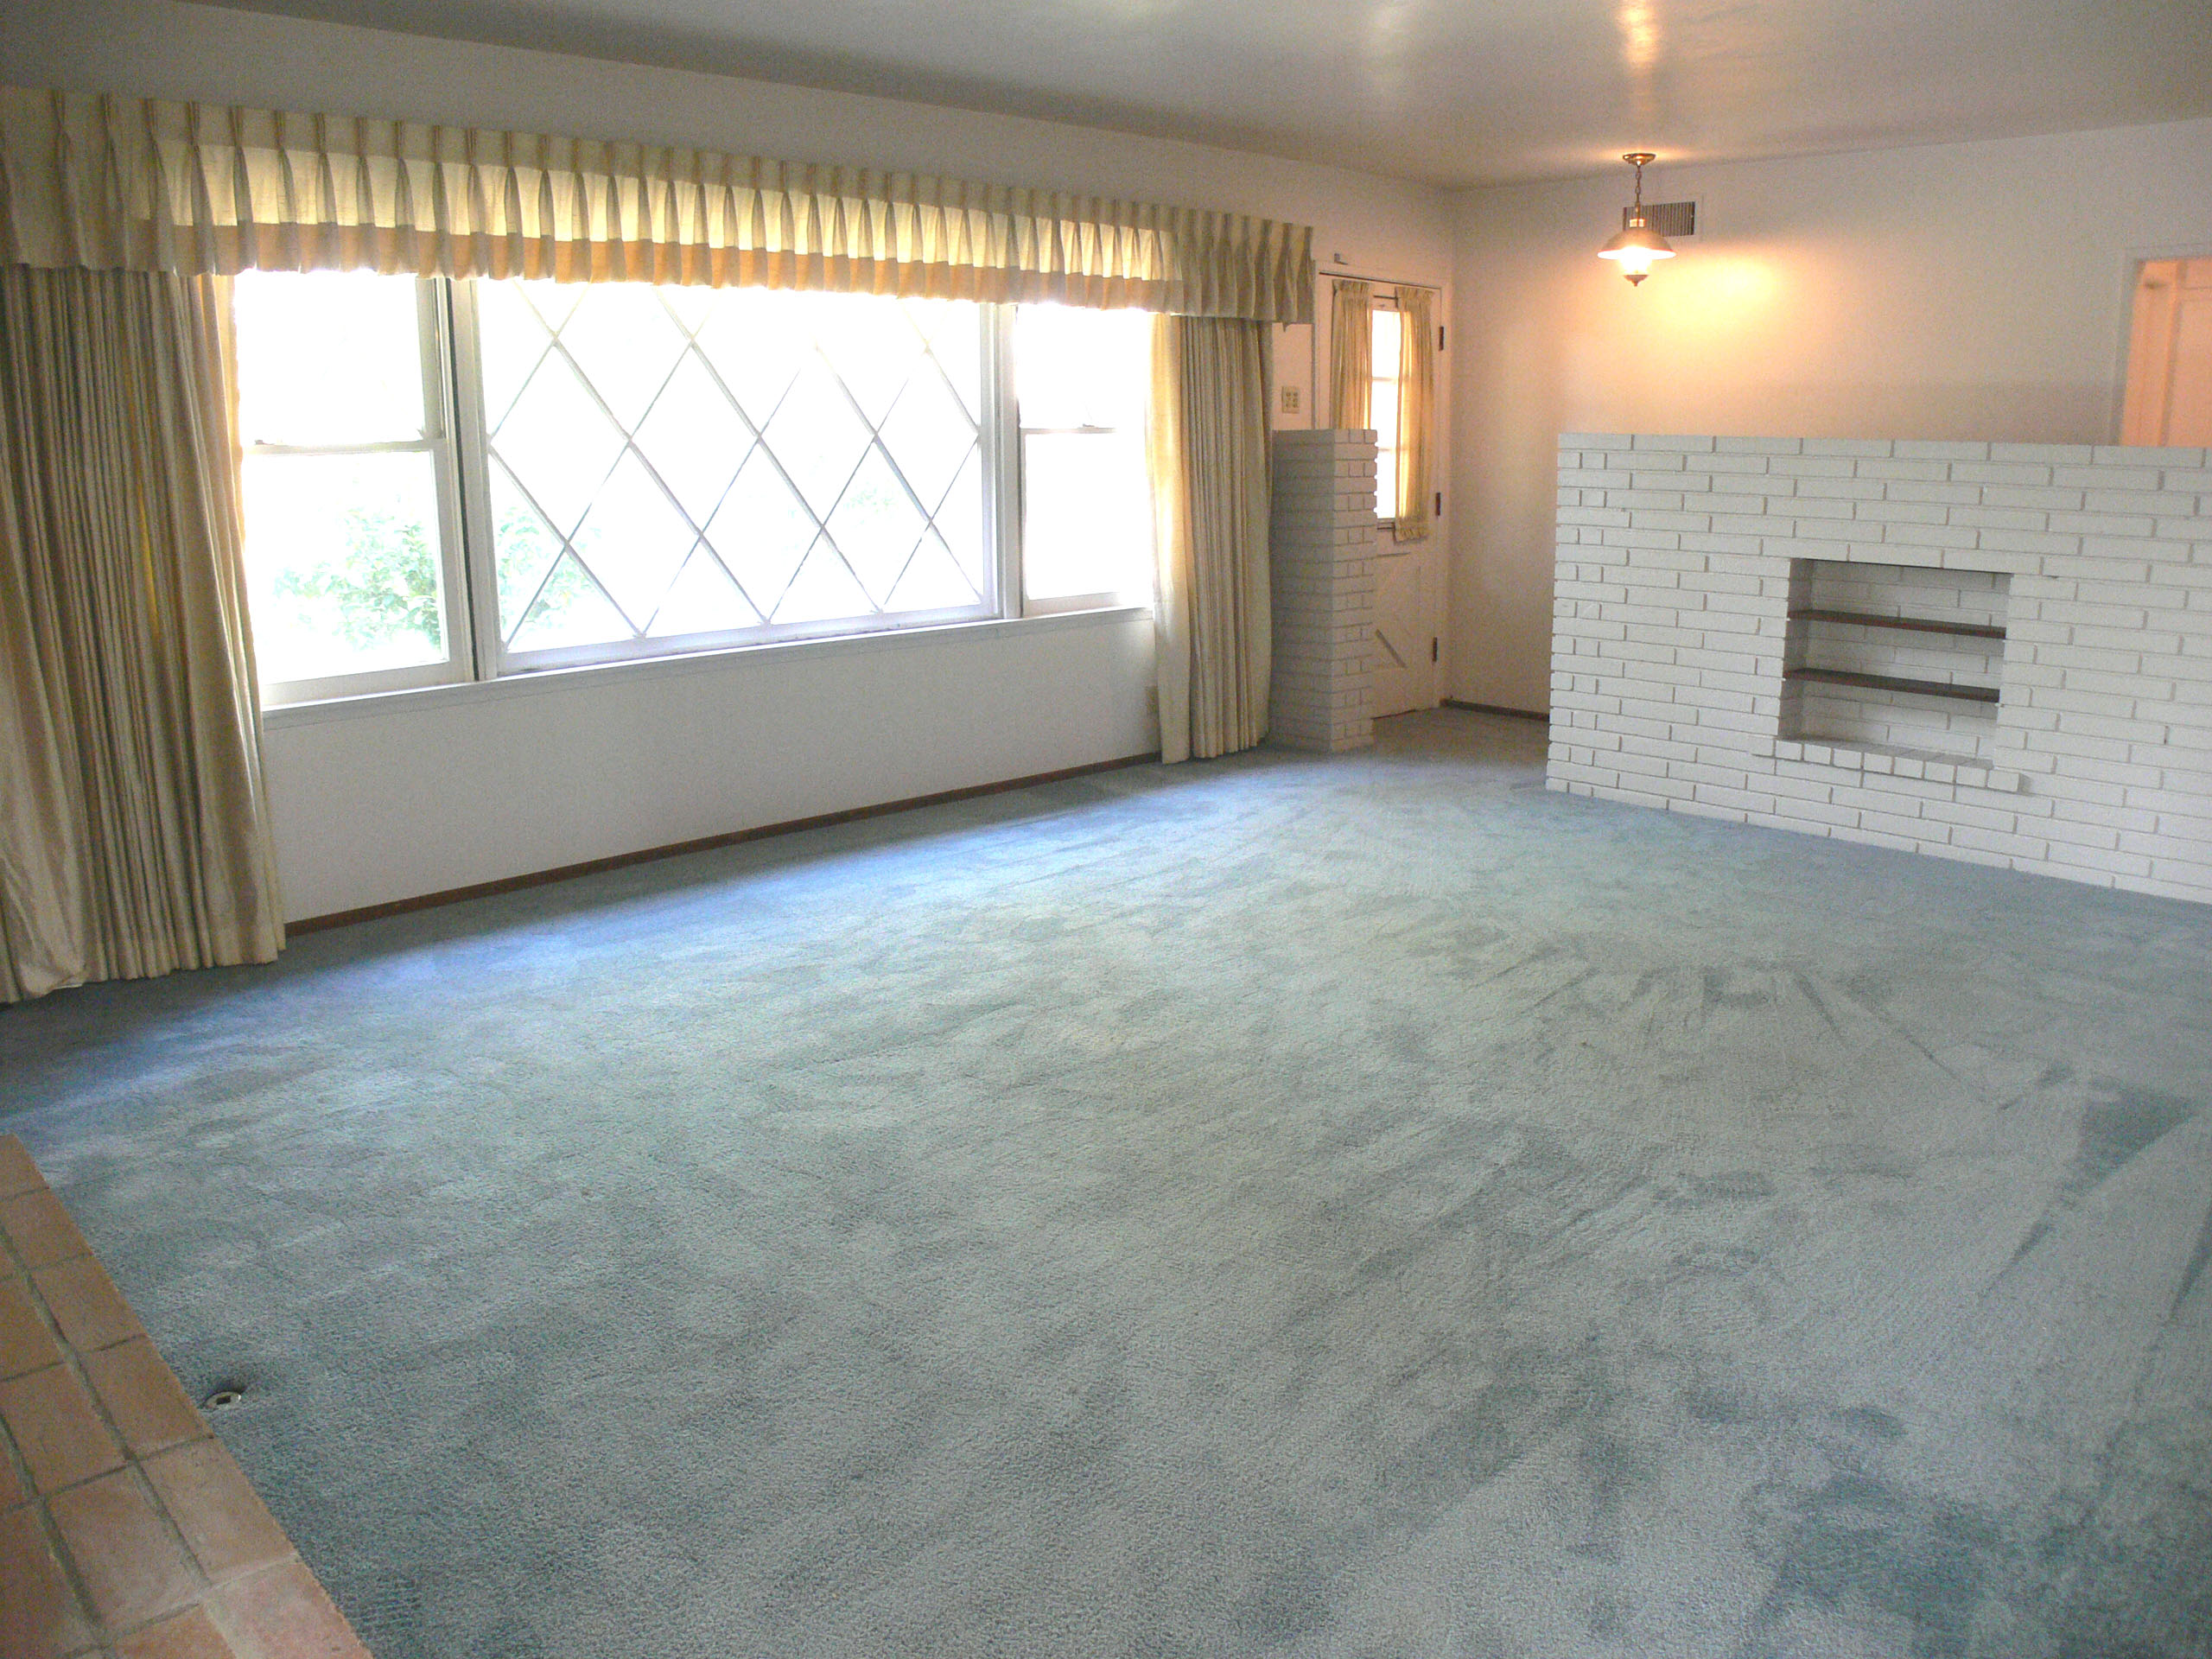 Massive living room with gorgeous hardwood floors under carpet. This room will look even larger with the hardwood floors exposed!